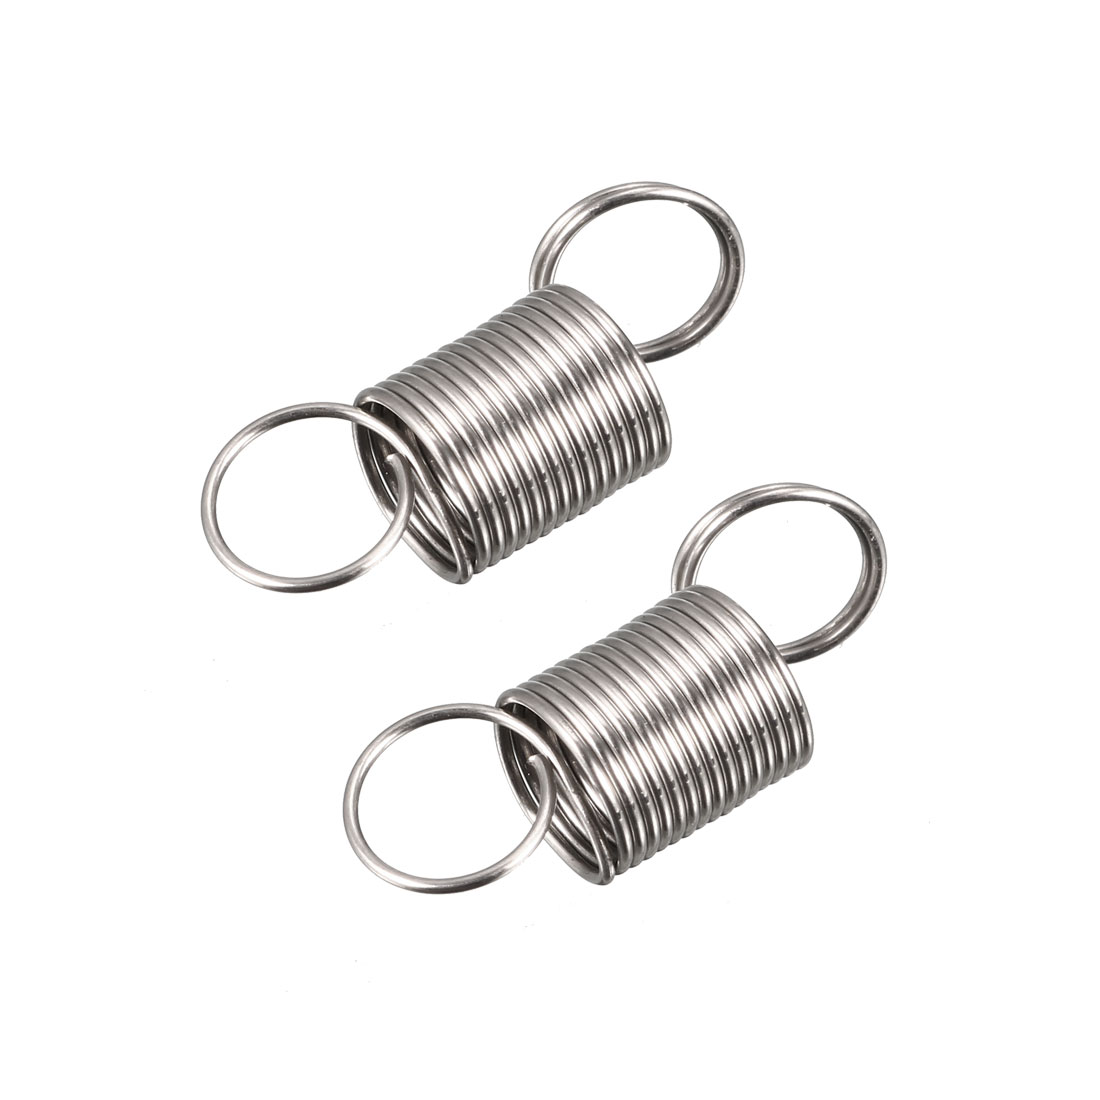 Metal Stamping Compression Extension Spring 0.45mmx6mmx7mm 5pcs